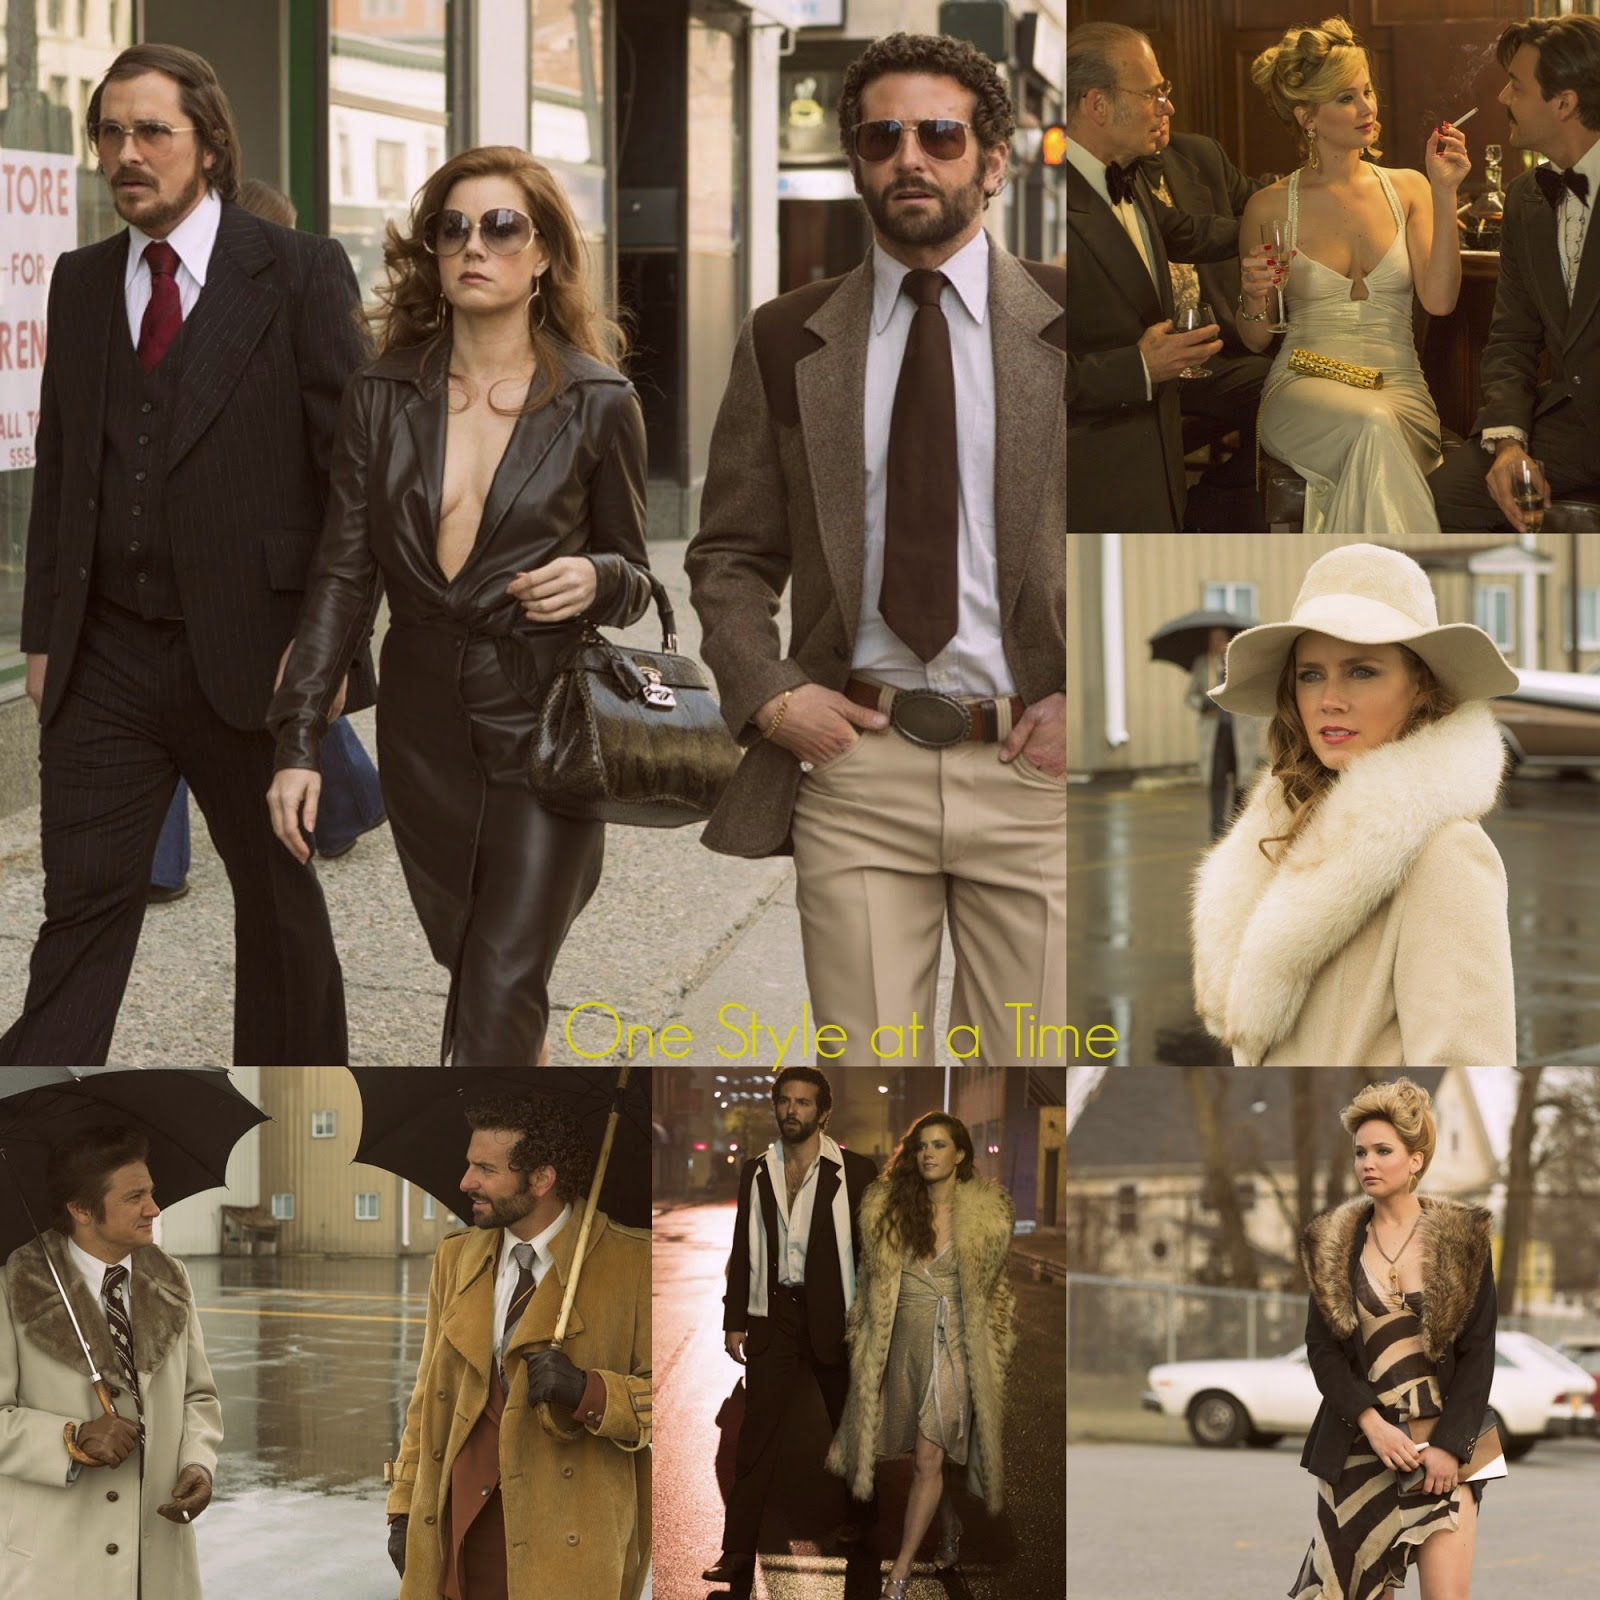 Jackie O Hustler Pics Good fashion on film: 'american hustle' 70's style - one style at a time